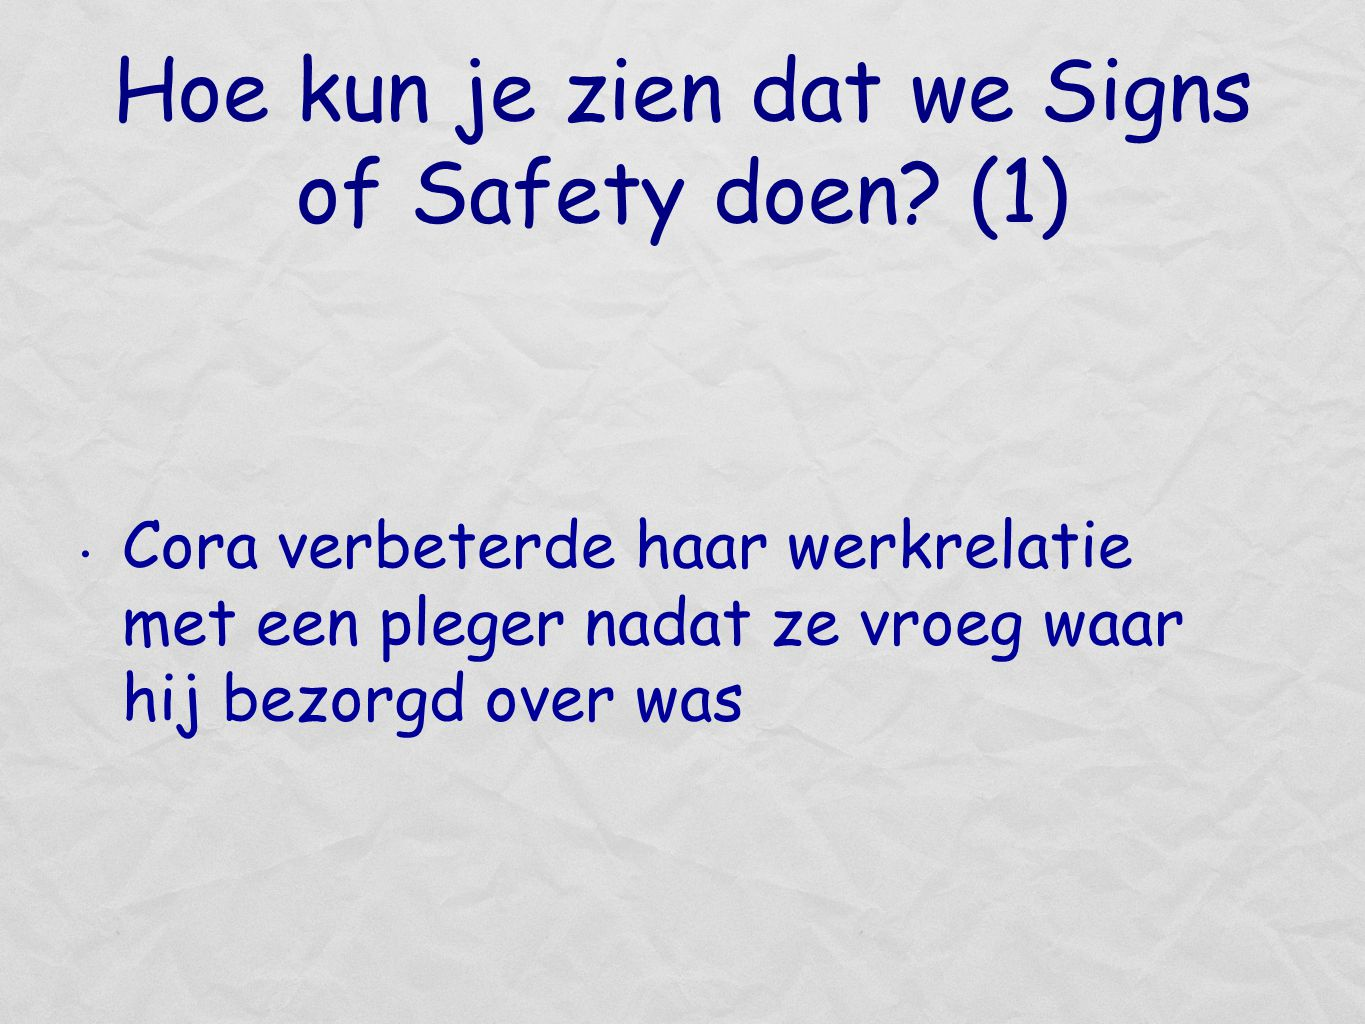 Hoe kun je zien dat we Signs of Safety doen.